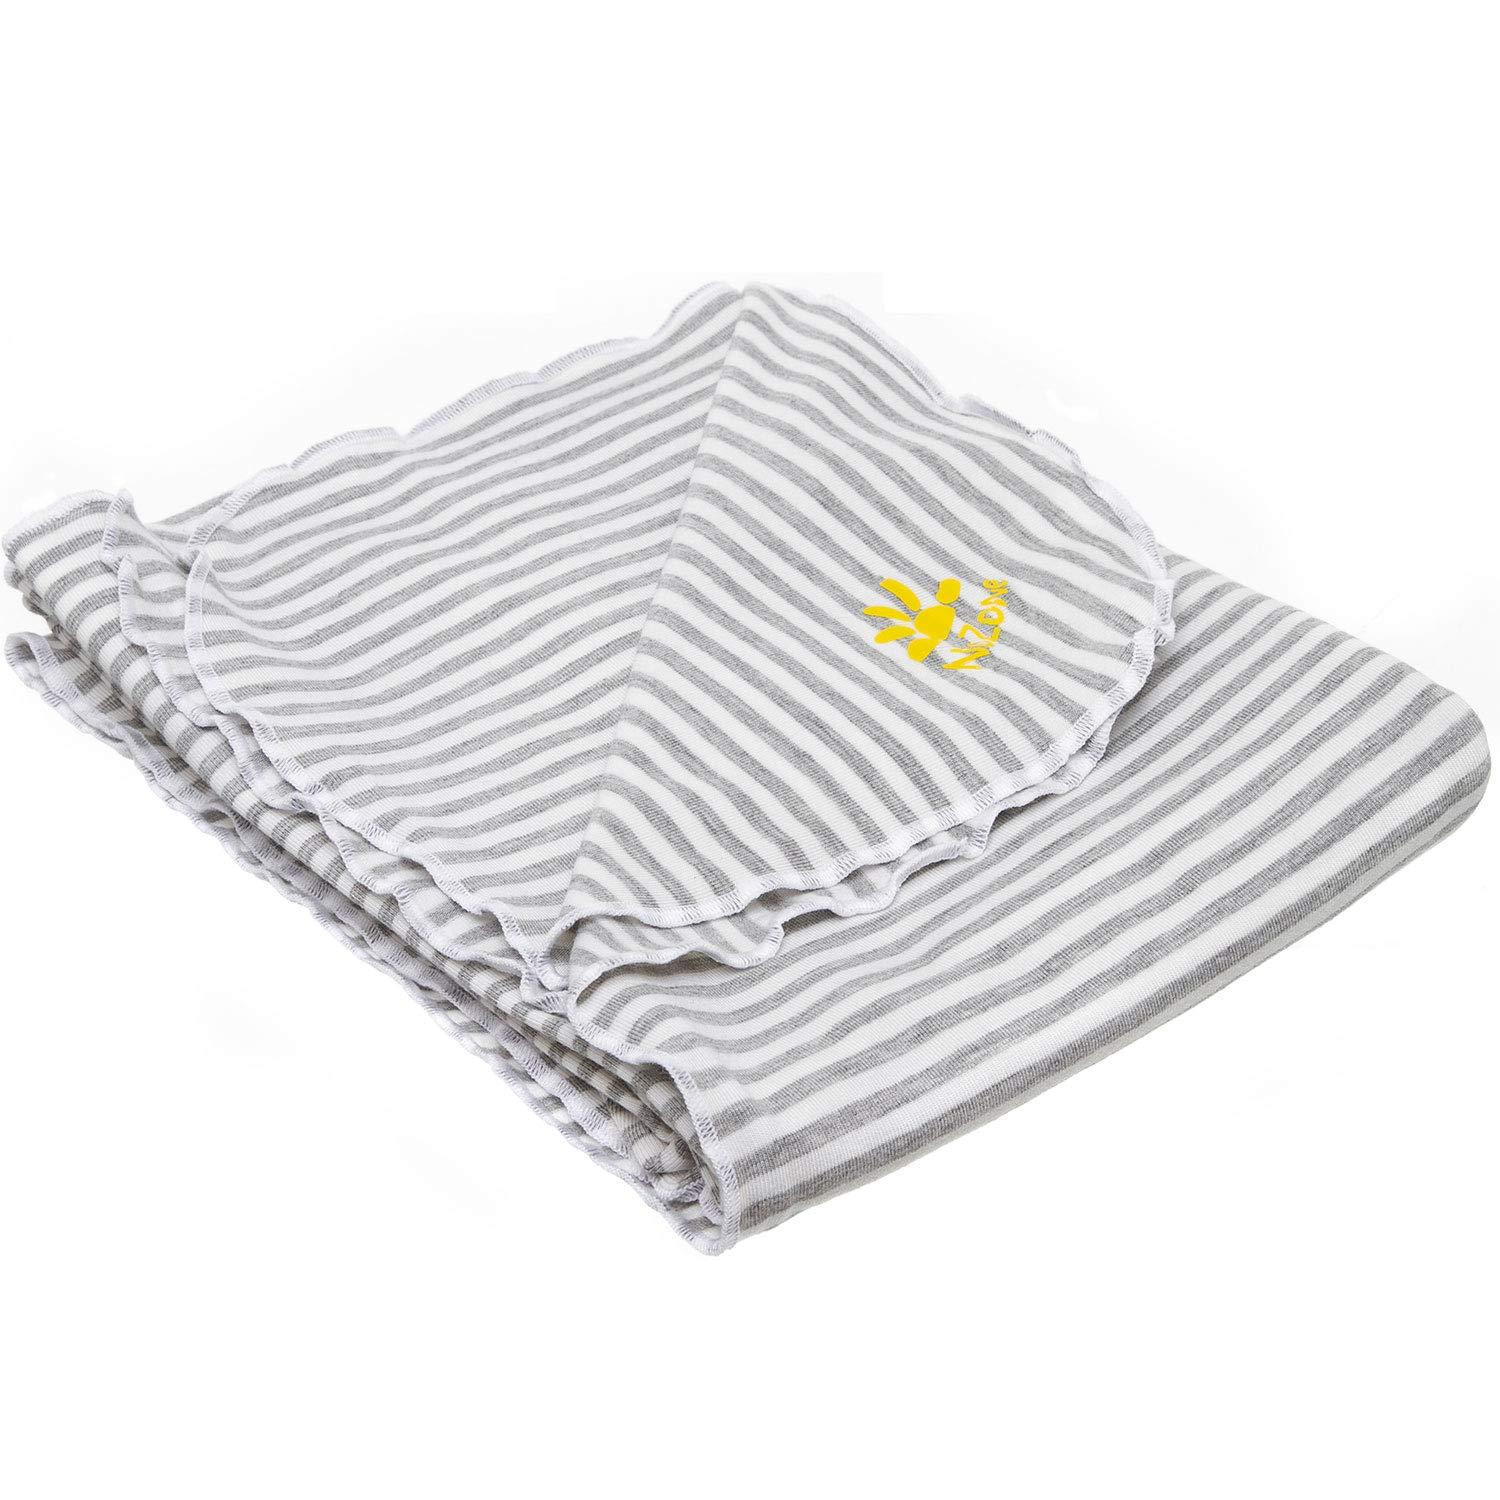 Nozone UPF 50+ Sun Protective Baby Blanket in White/Grey Stripe product image